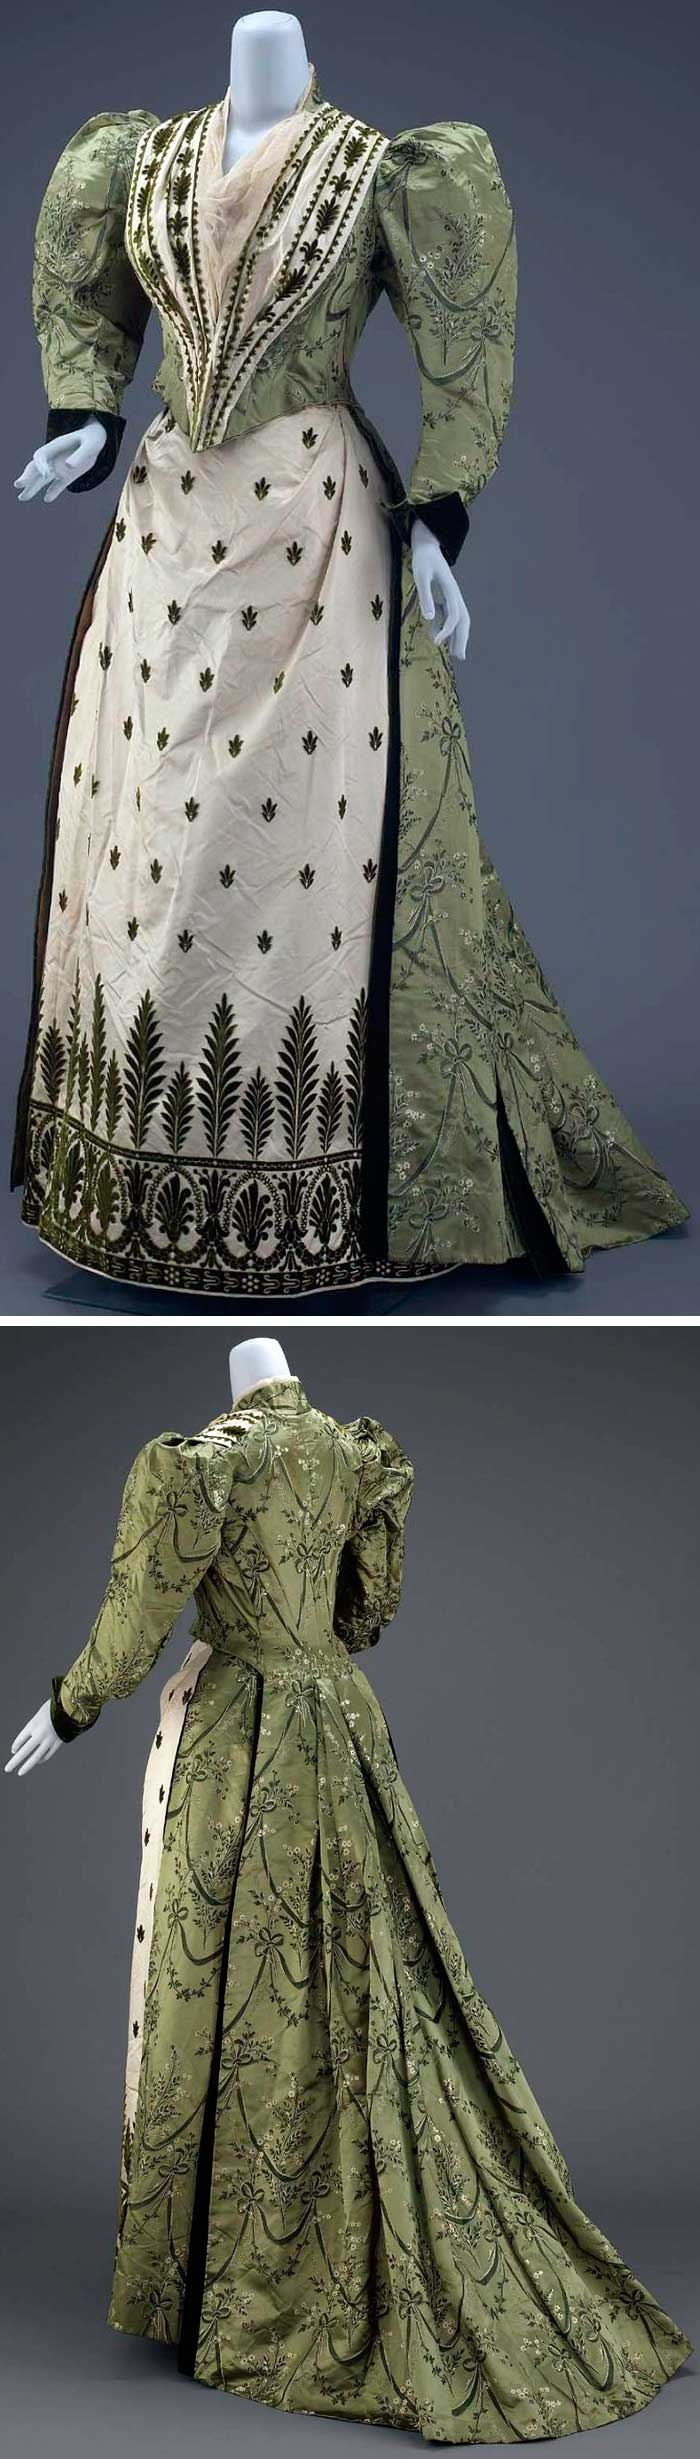 Circa 1888-1890 two-piece dress. Overdress: sage green compound satin w/garlands of floral sprigs. Pointed bodice w/gathered panels of white satin w/green pile and mull. Leg-o-mutton sleeves; and green velvet cuffs. Via Museum of Fine Arts, Boston.